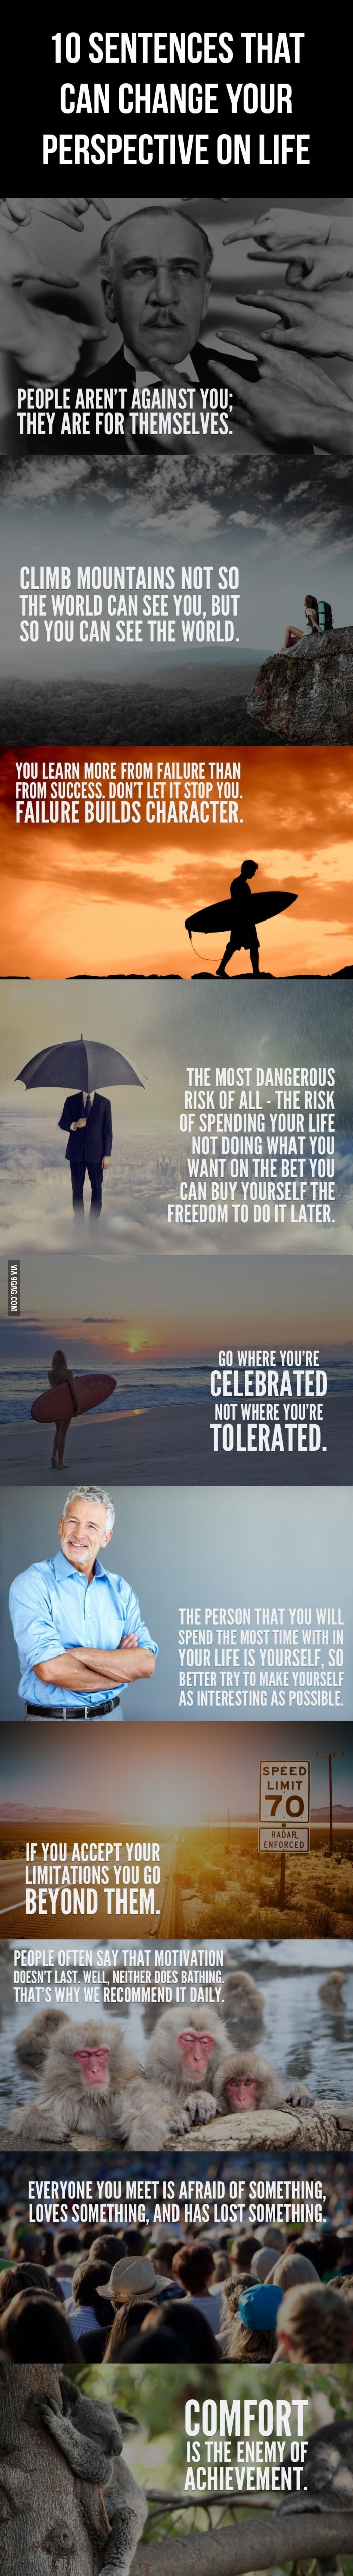 10 Sentences That Can Change Your Perspective On Life. The most dangerous risk of all - the risk of spending your life not doing what you want on the bet that you can buy yourself the freedom later.